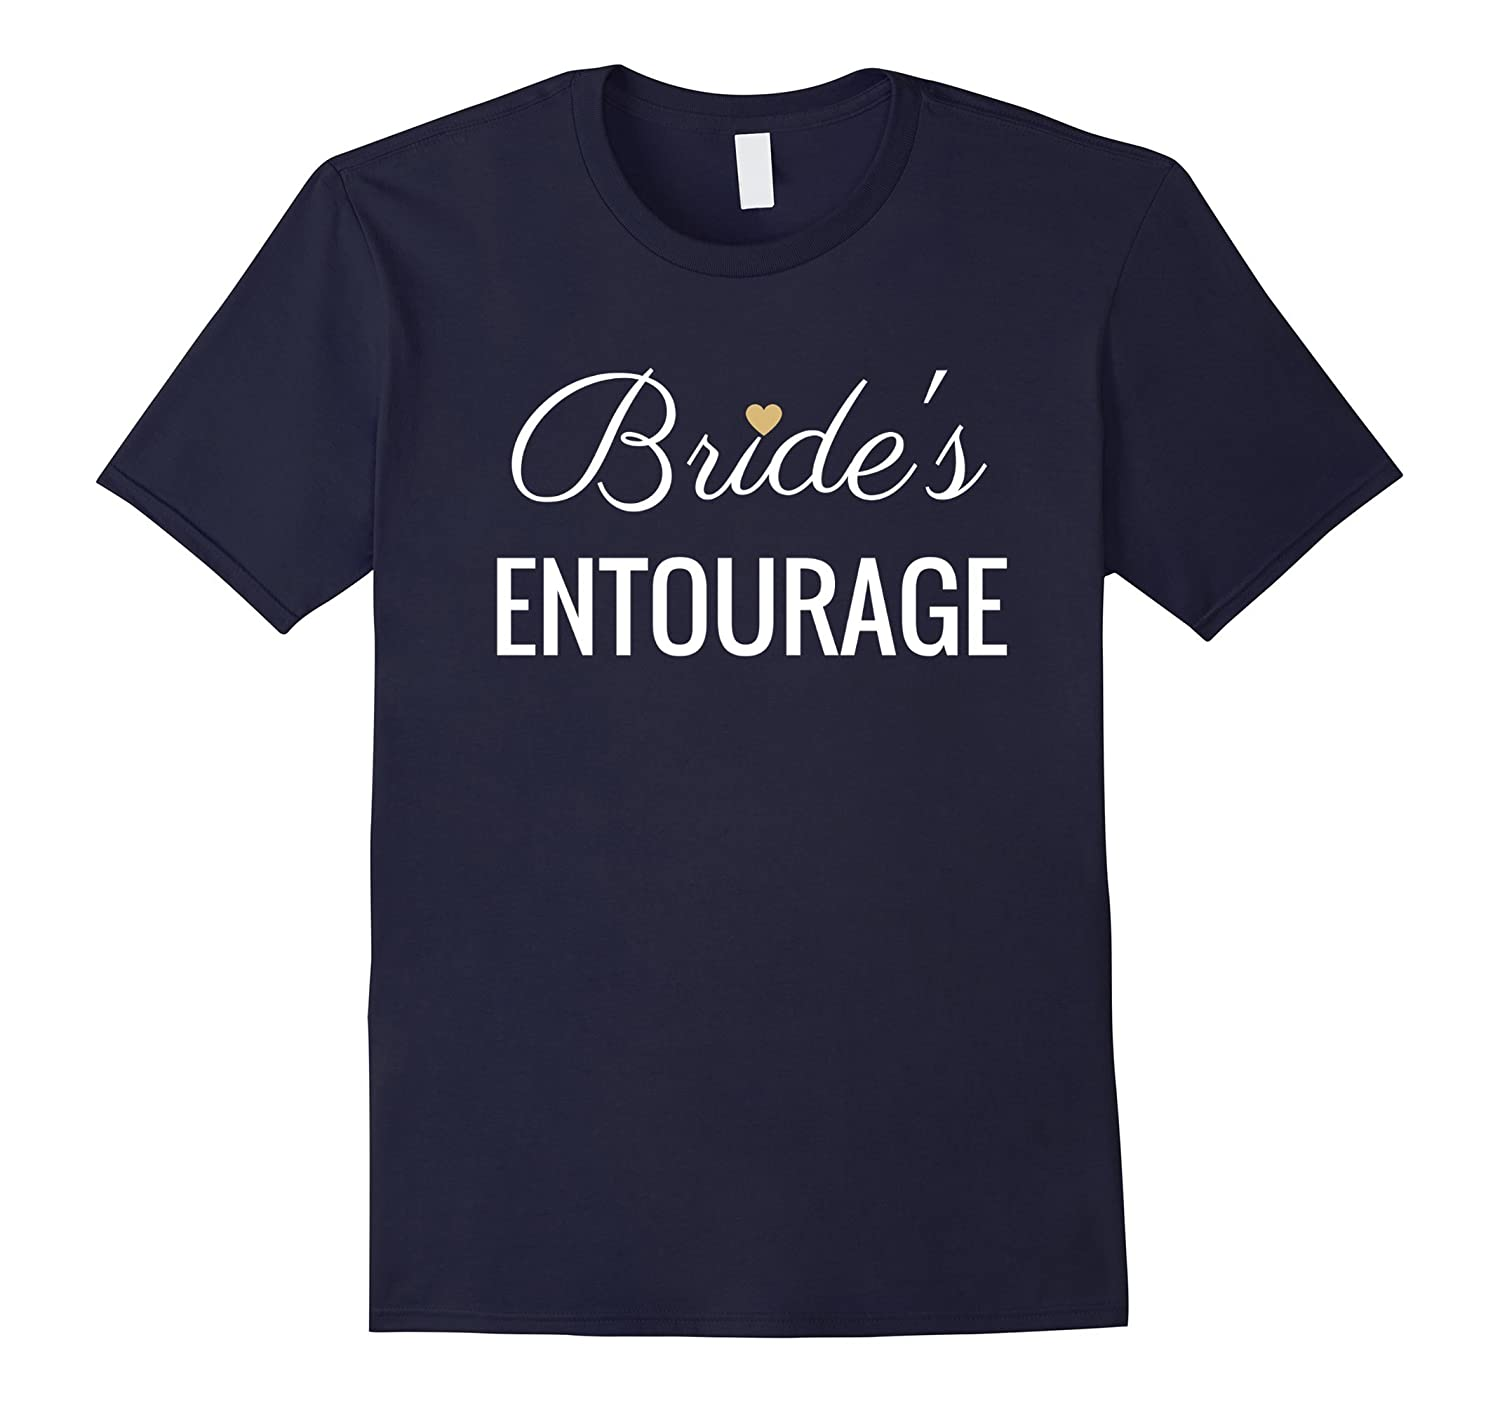 Brides Entourage T-Shirt White Text  Gold Heart Wedding-Vaci